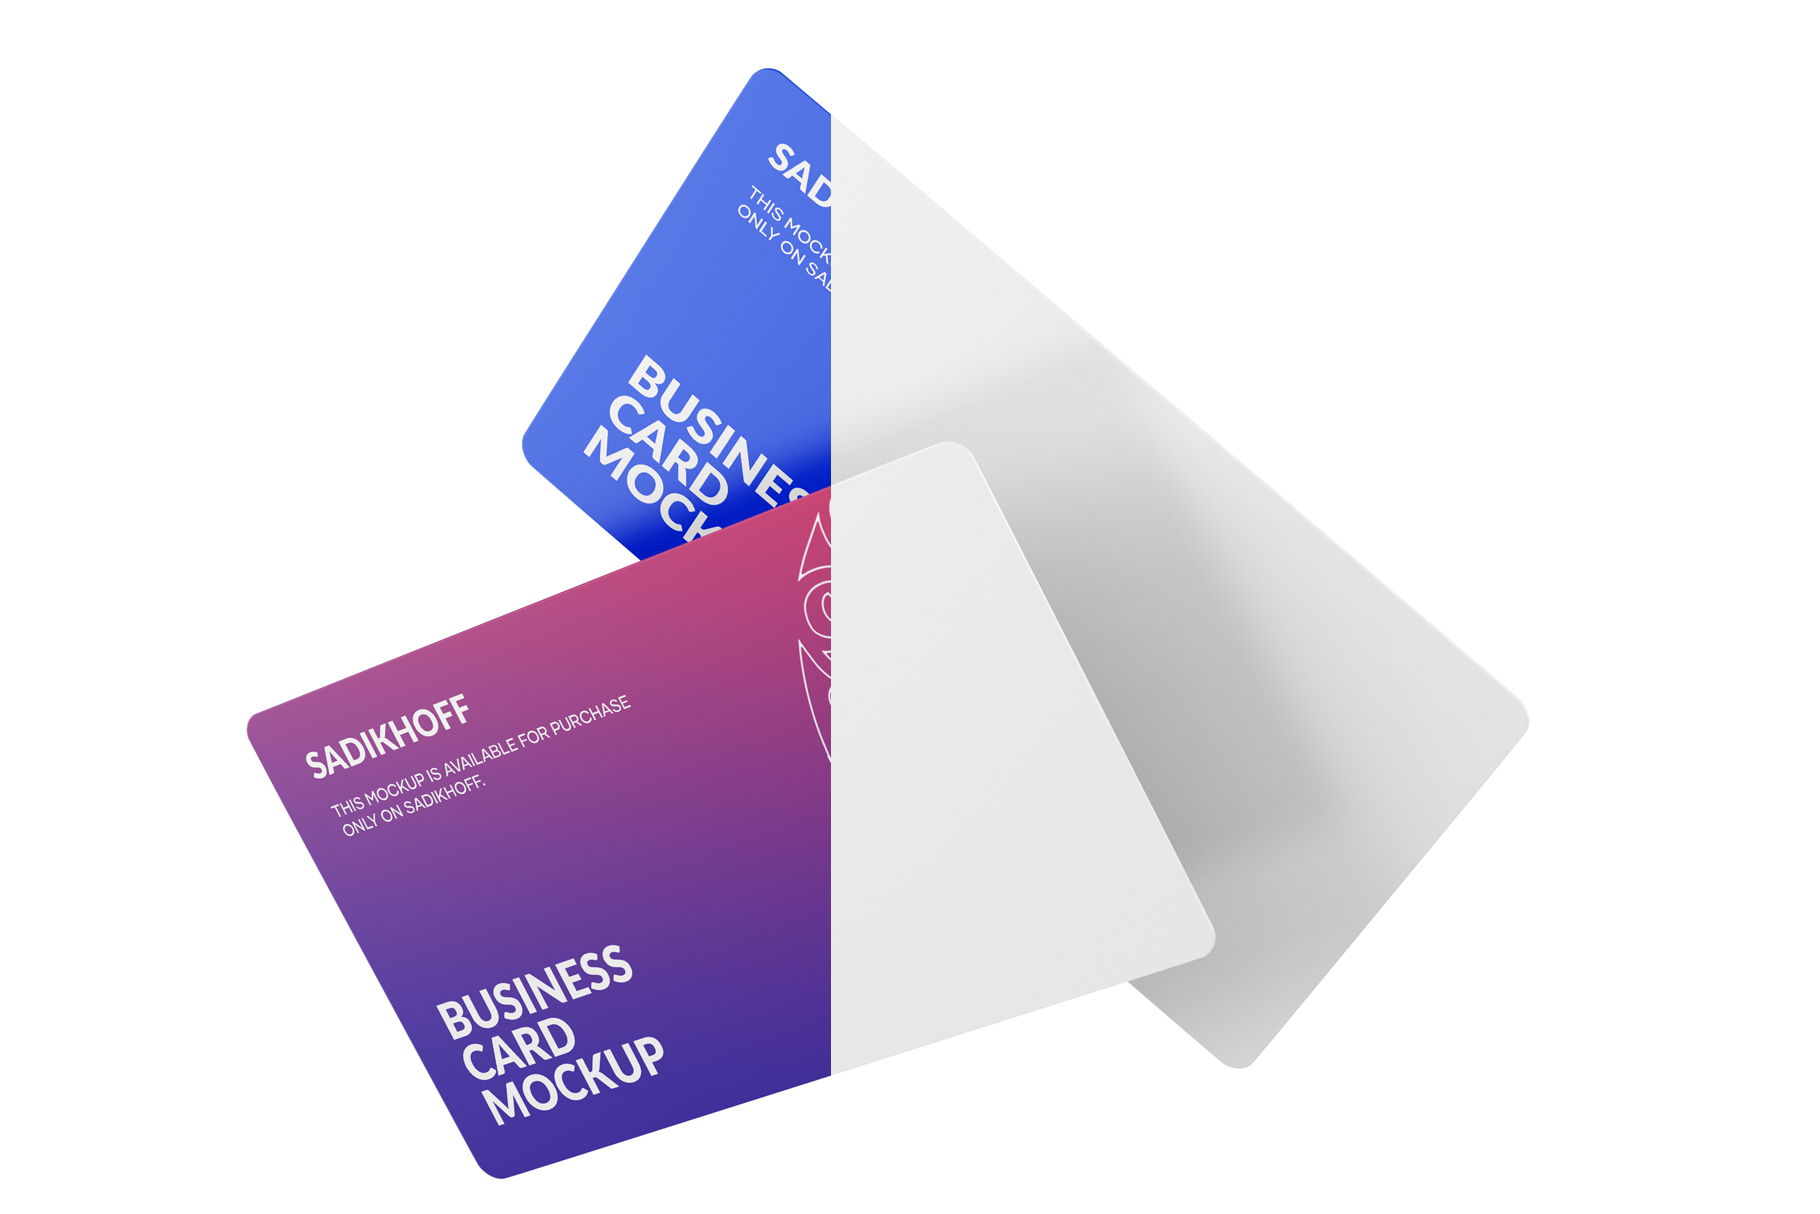 Business Cards Mockup example image 4